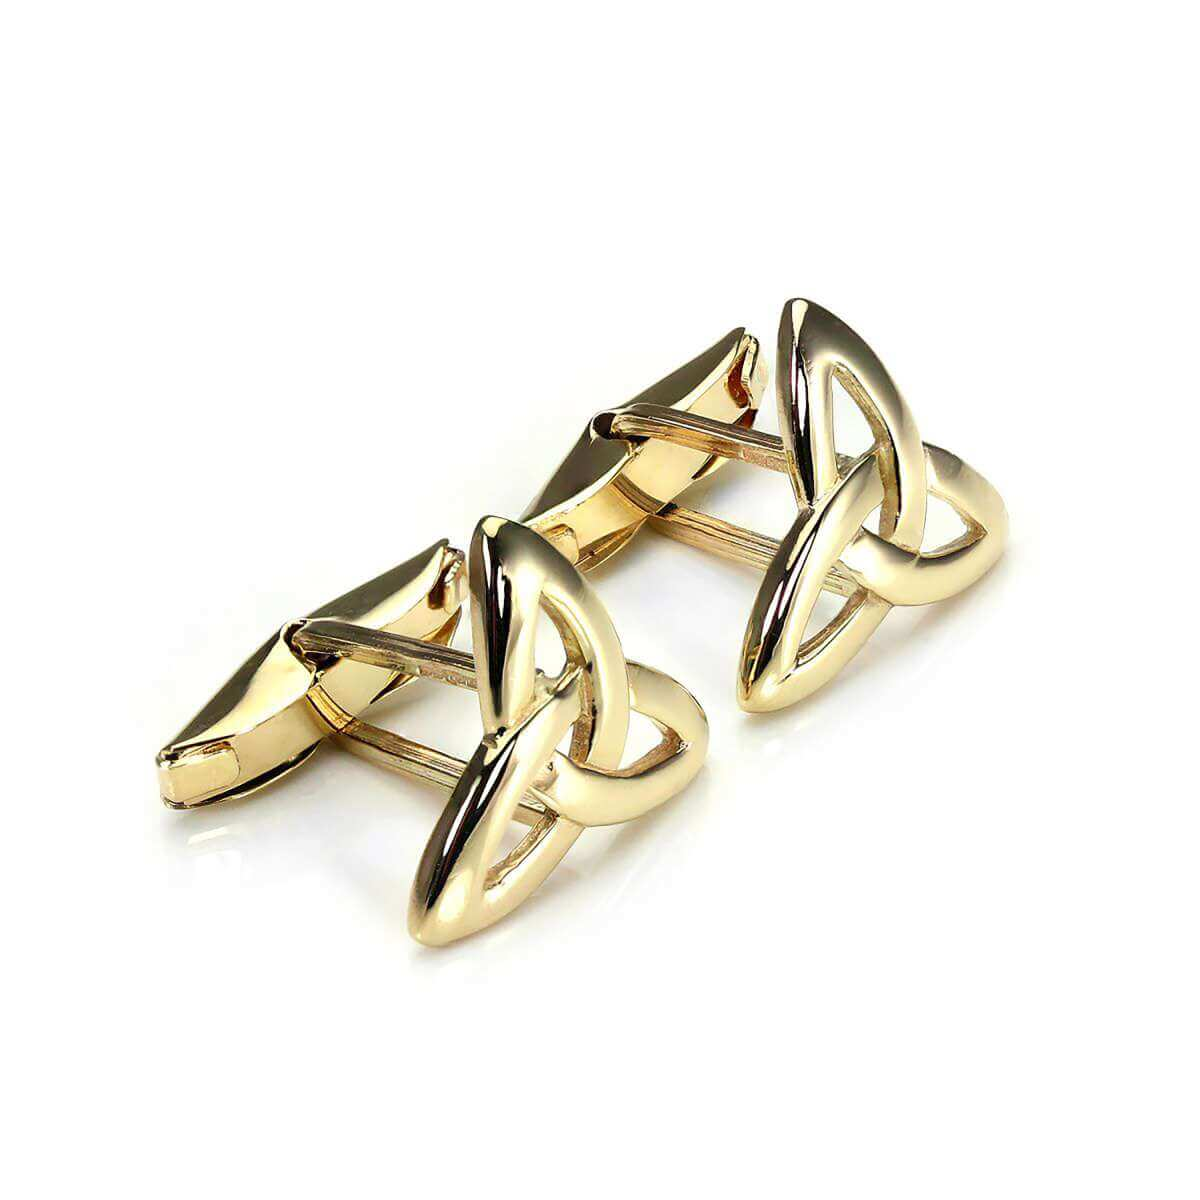 9ct Gold Celtic Knot Swivel Back Cufflinks